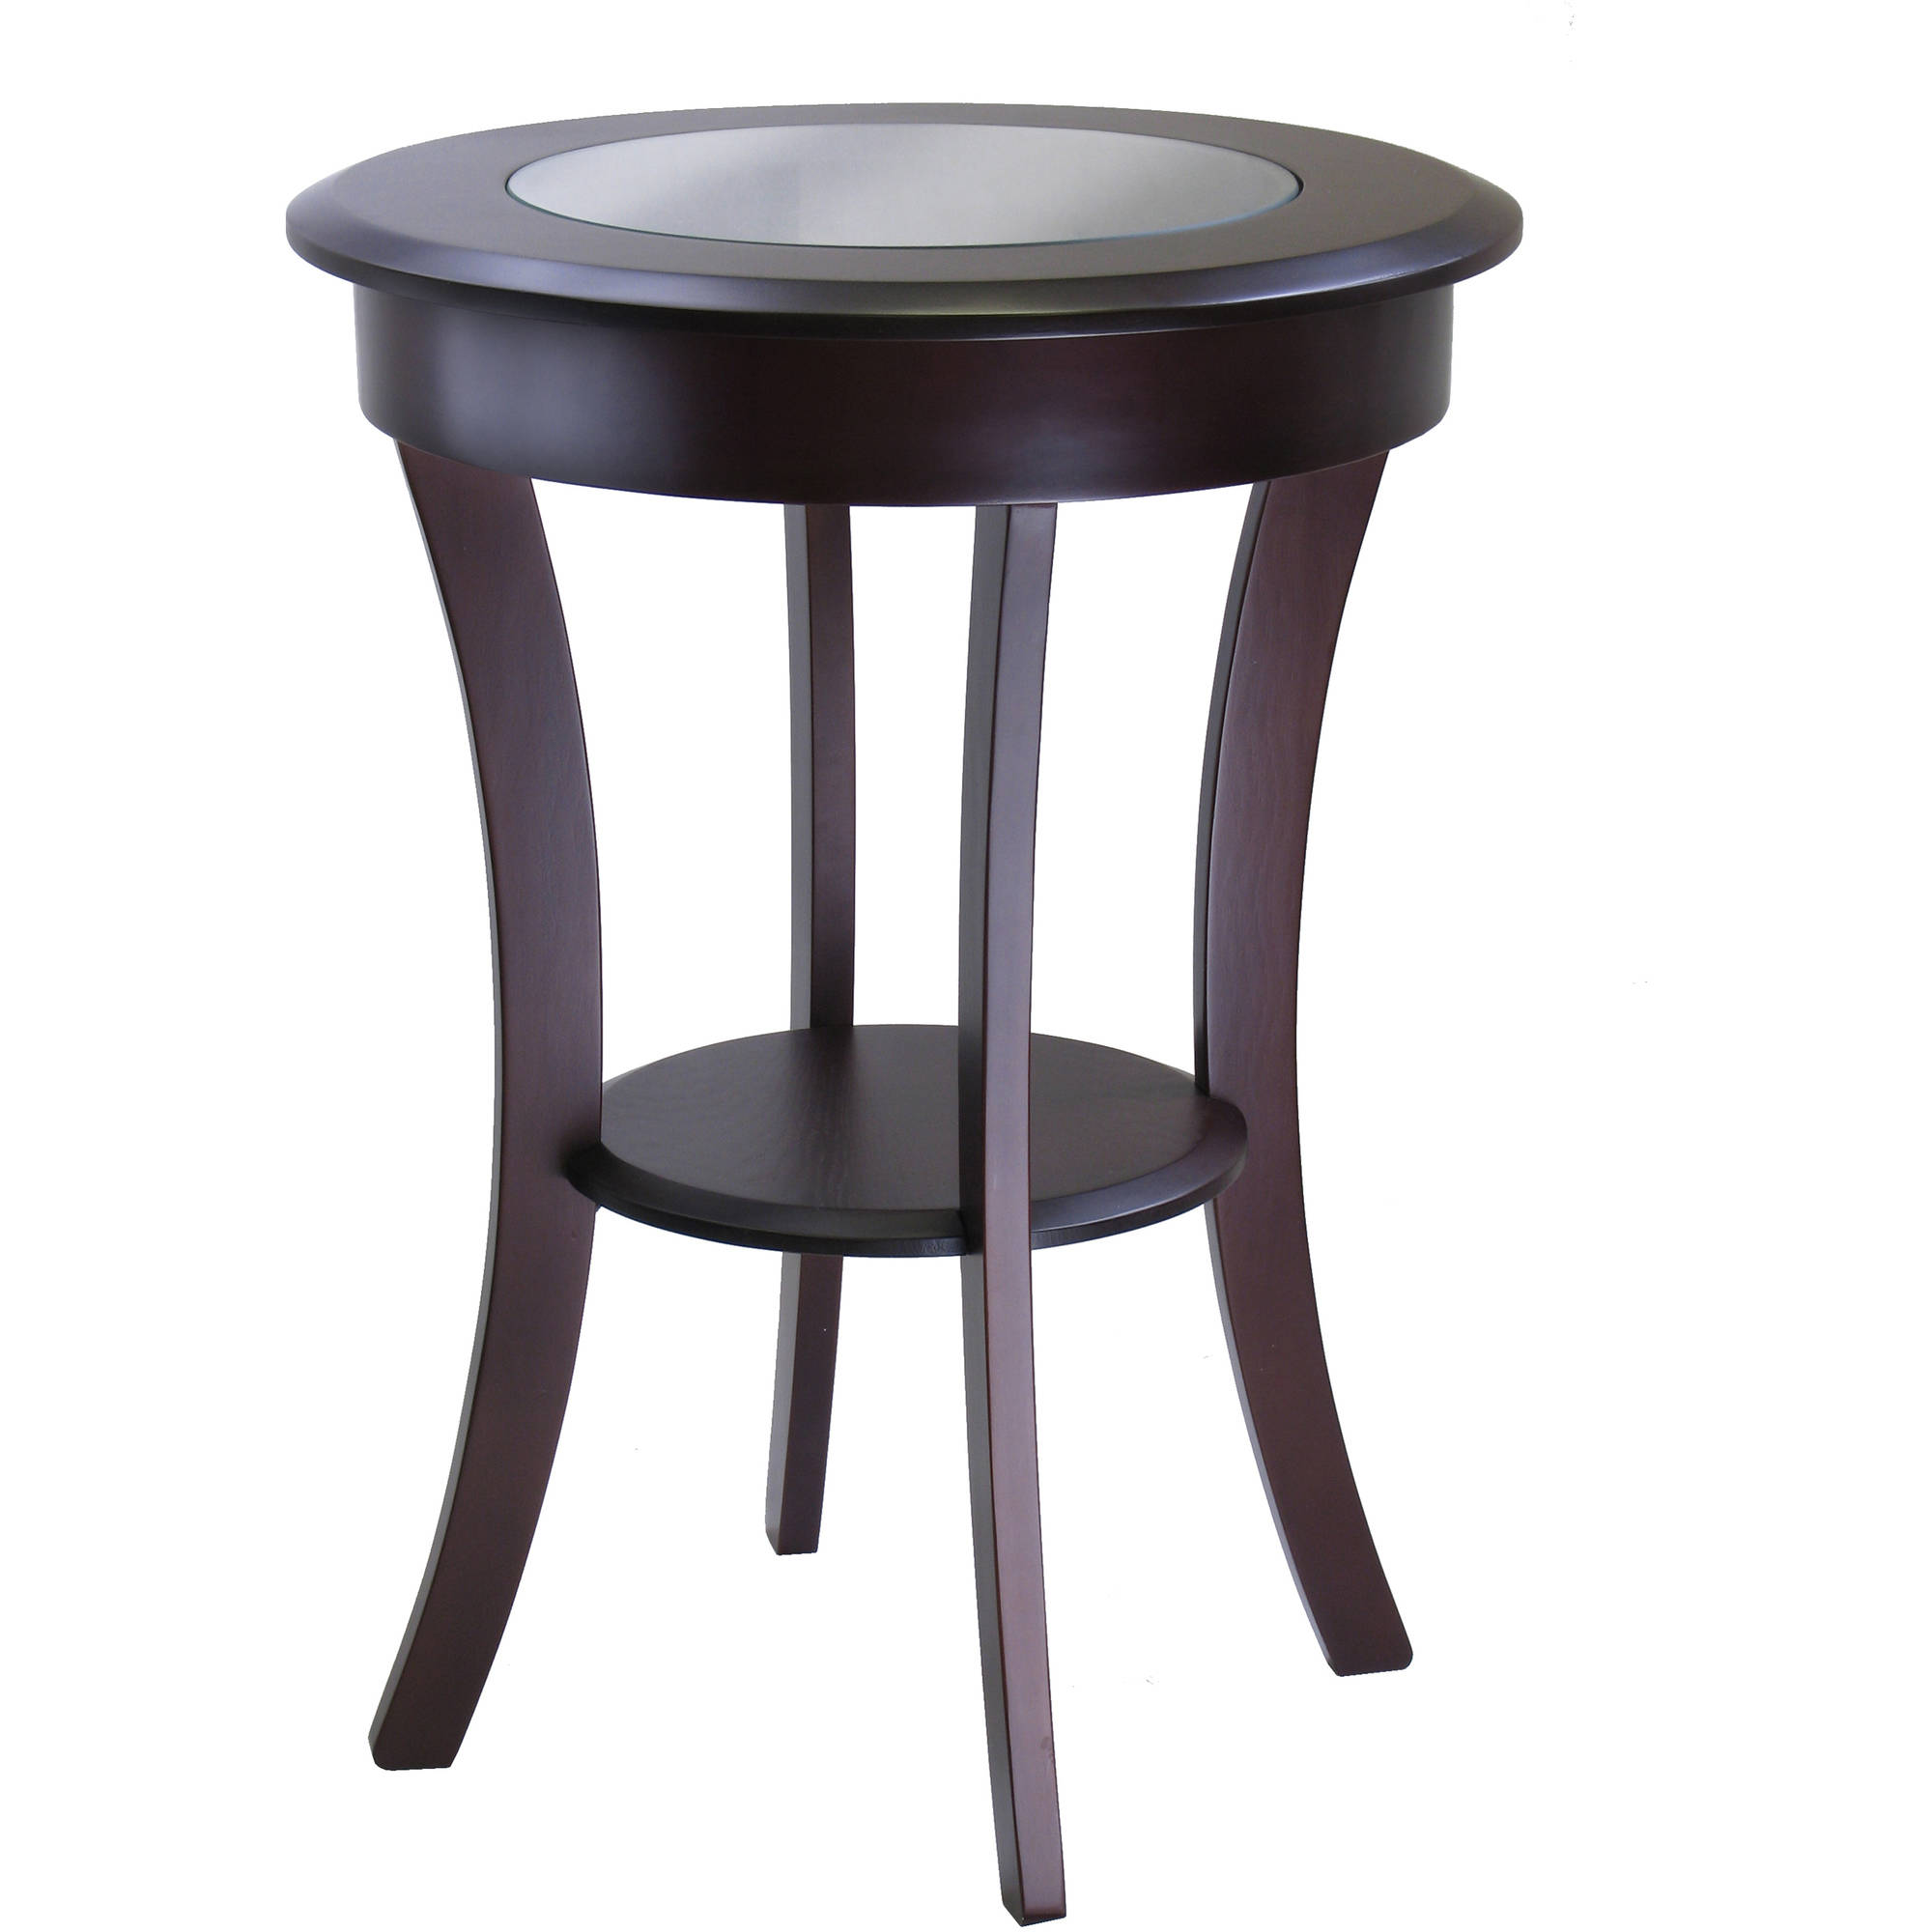 cassie round accent table with glass top chinese porcelain lamps knobs dining chairs edmonton living room interior design oval lucite coffee target gold console wooden legs